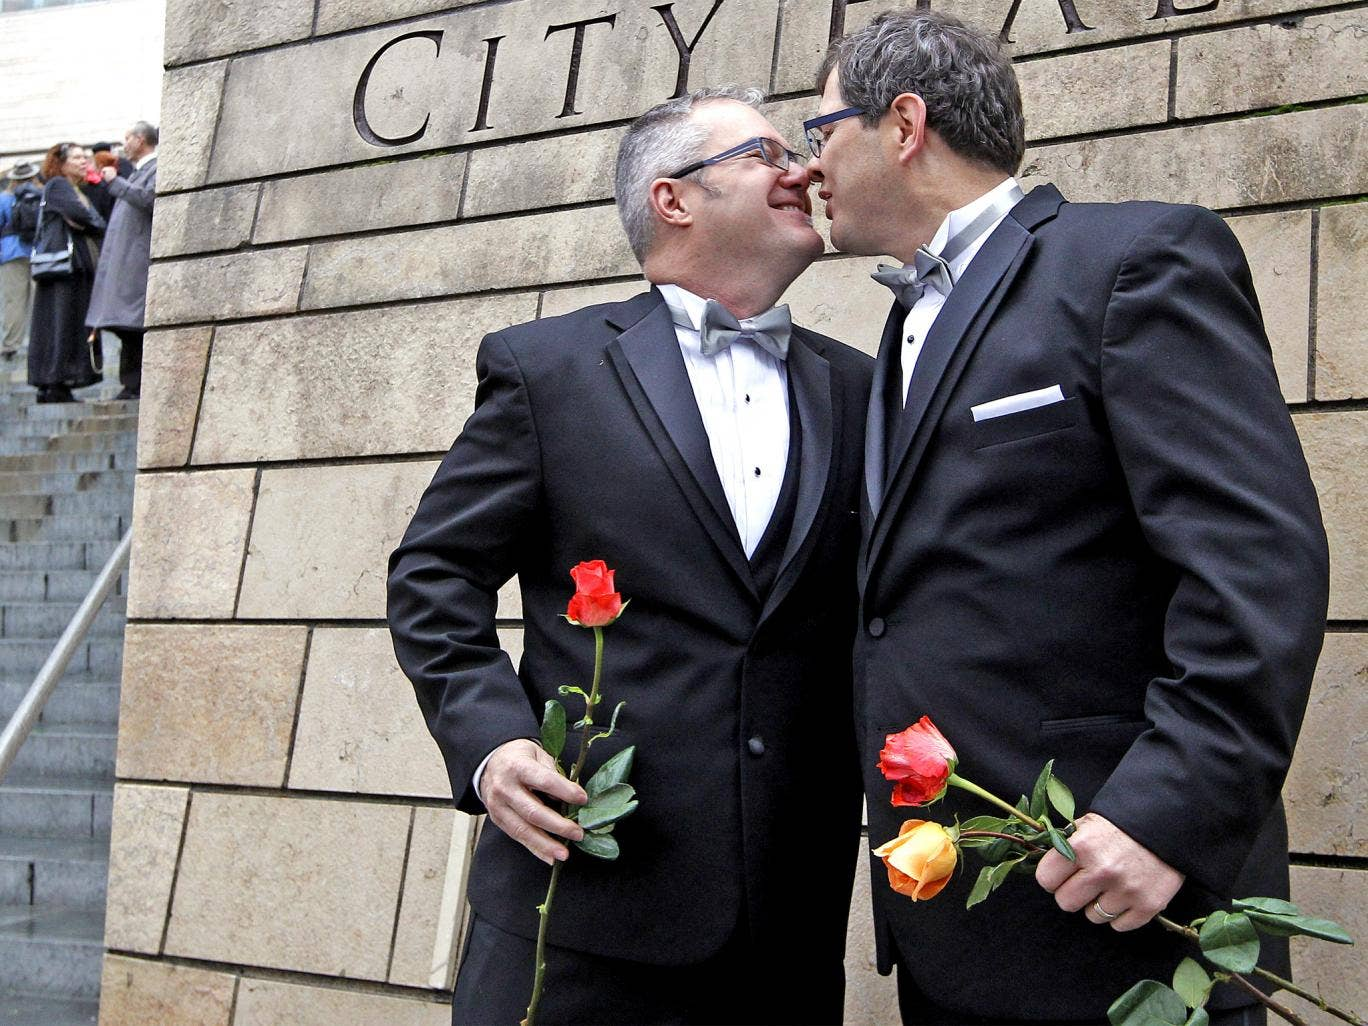 Terry Gilbert, left, and Paul Beppler were among the first gay couples to legally marry in Seattle at the weekend